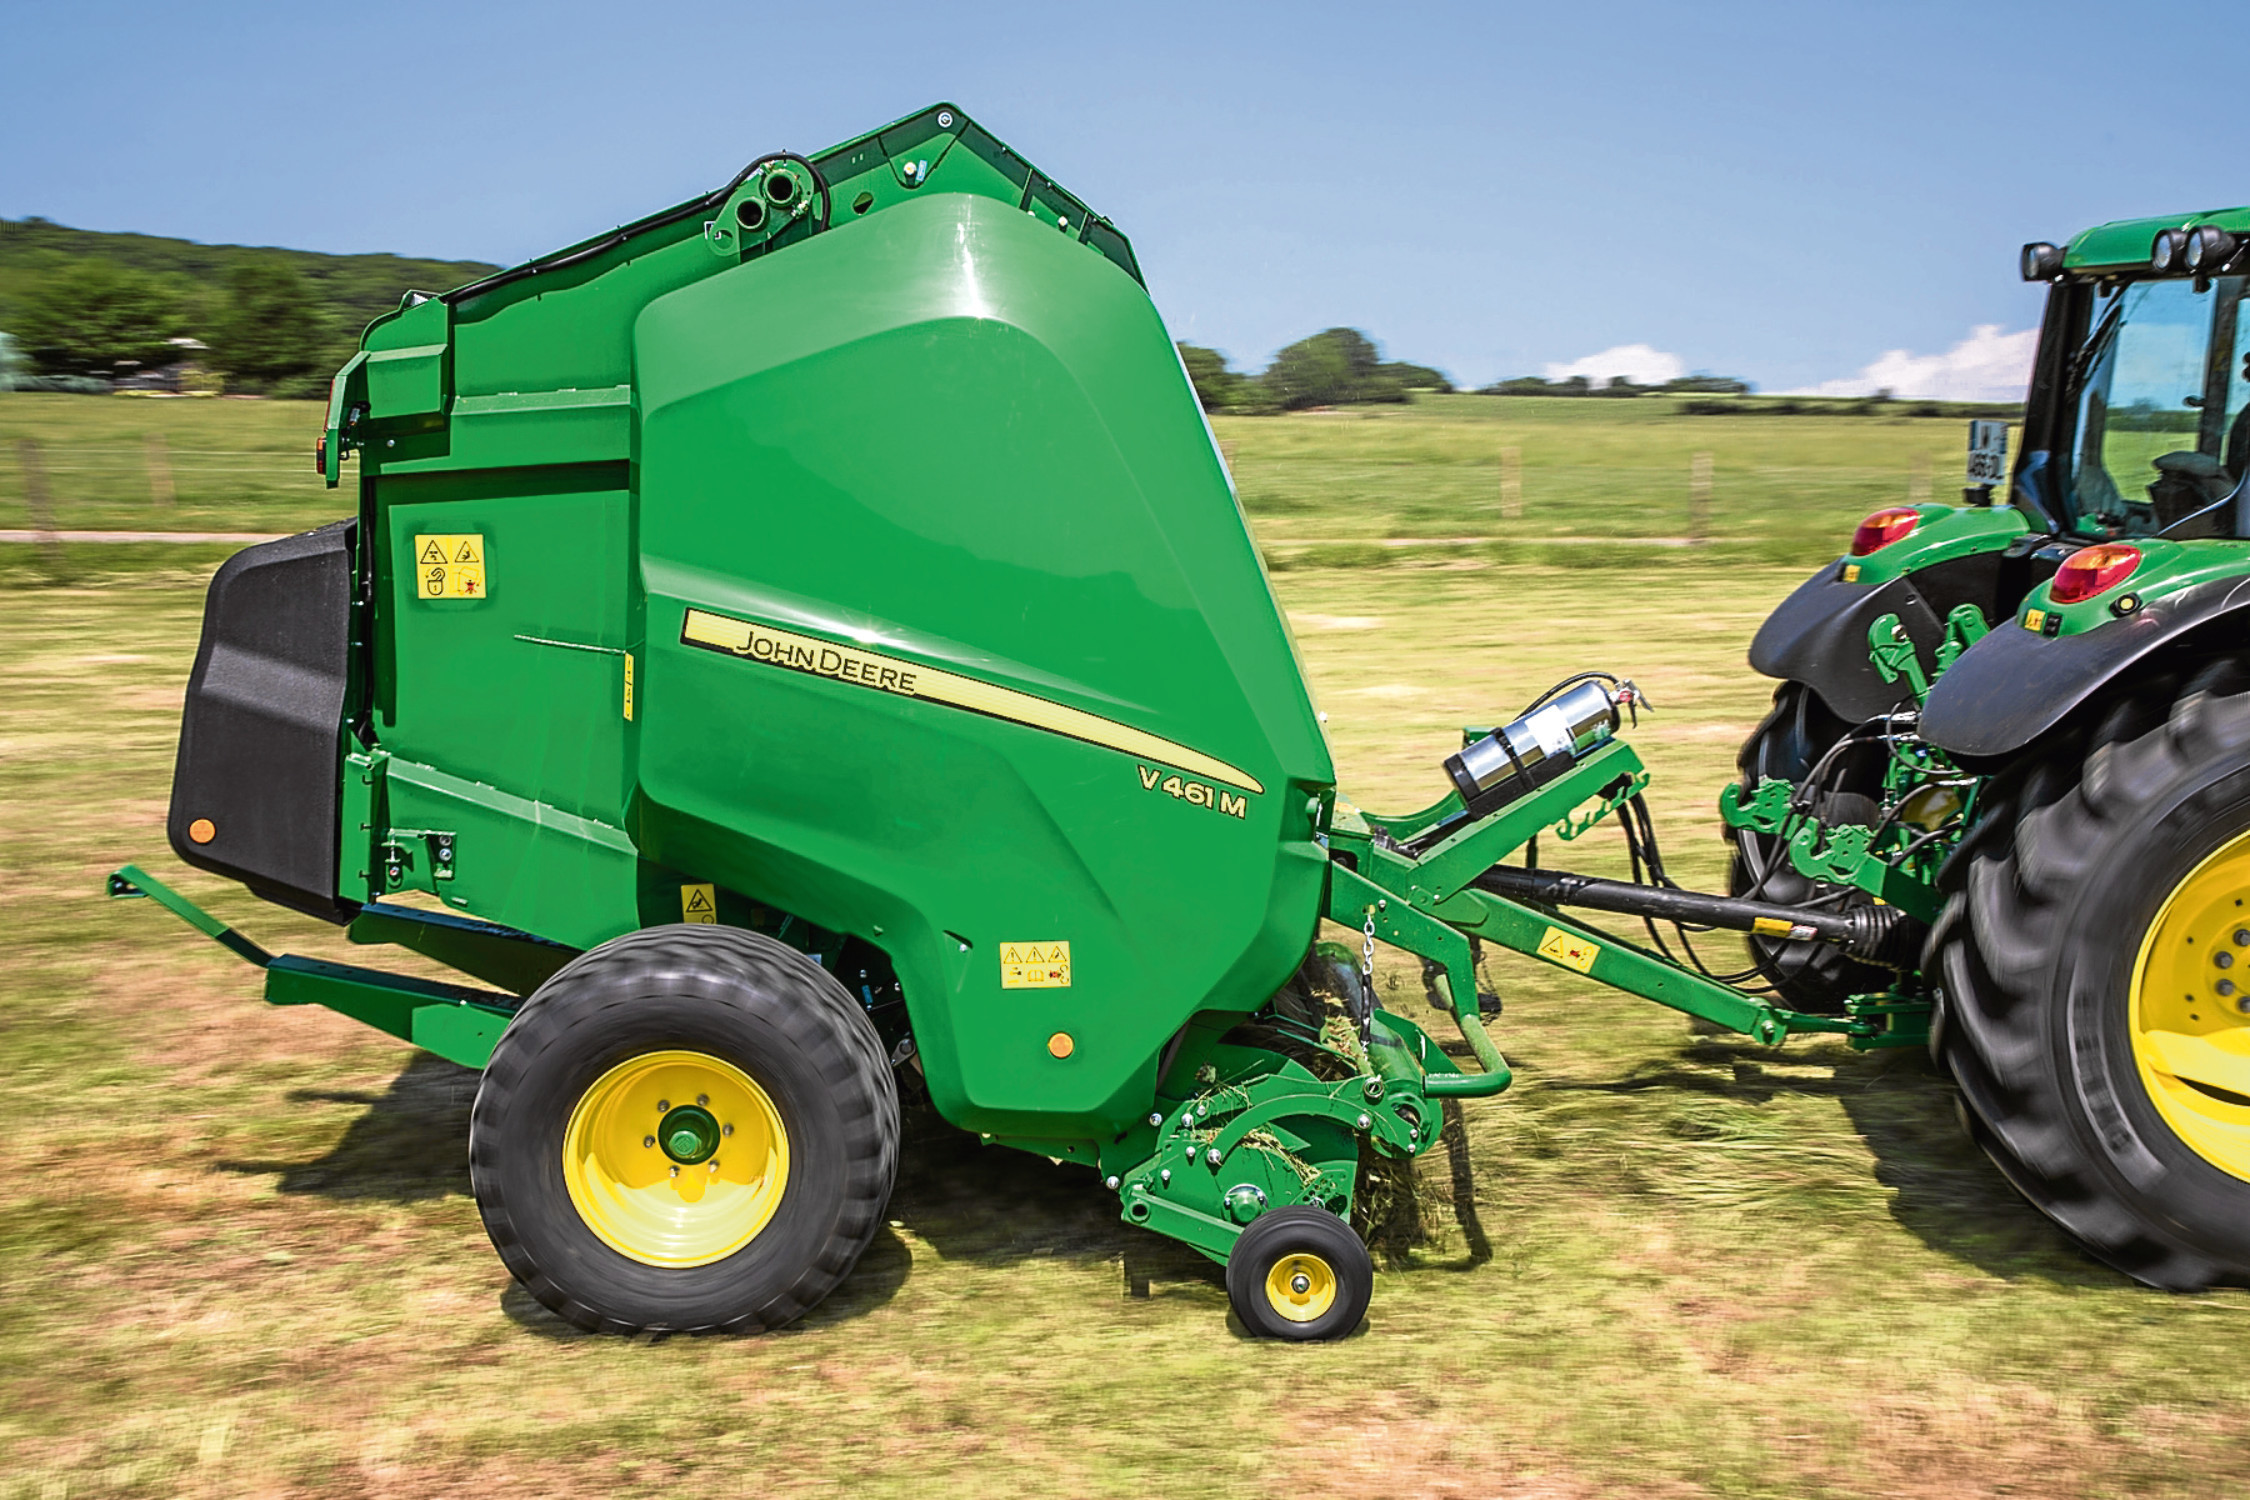 The new John Deere V461M round baler